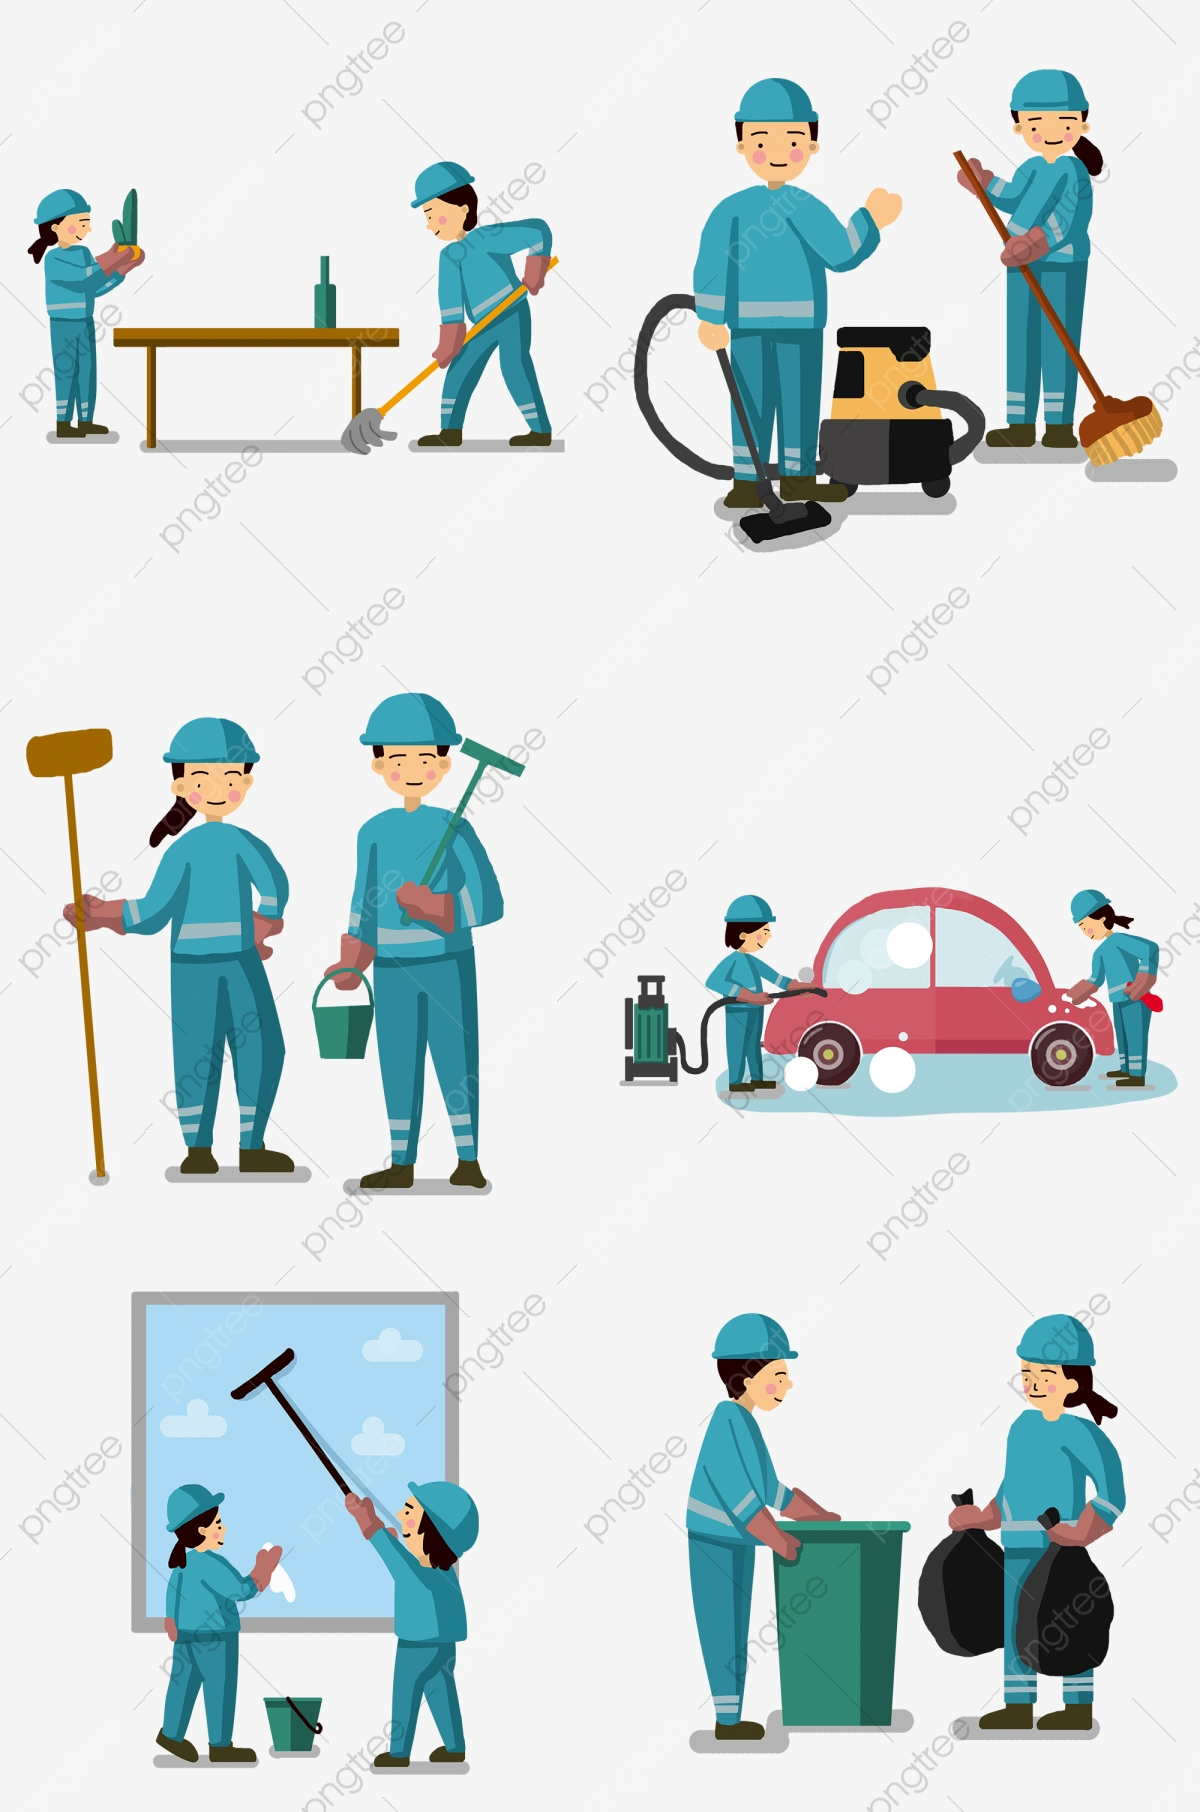 Welder Png Images Vector And Psd Files Free Download On Pngtree